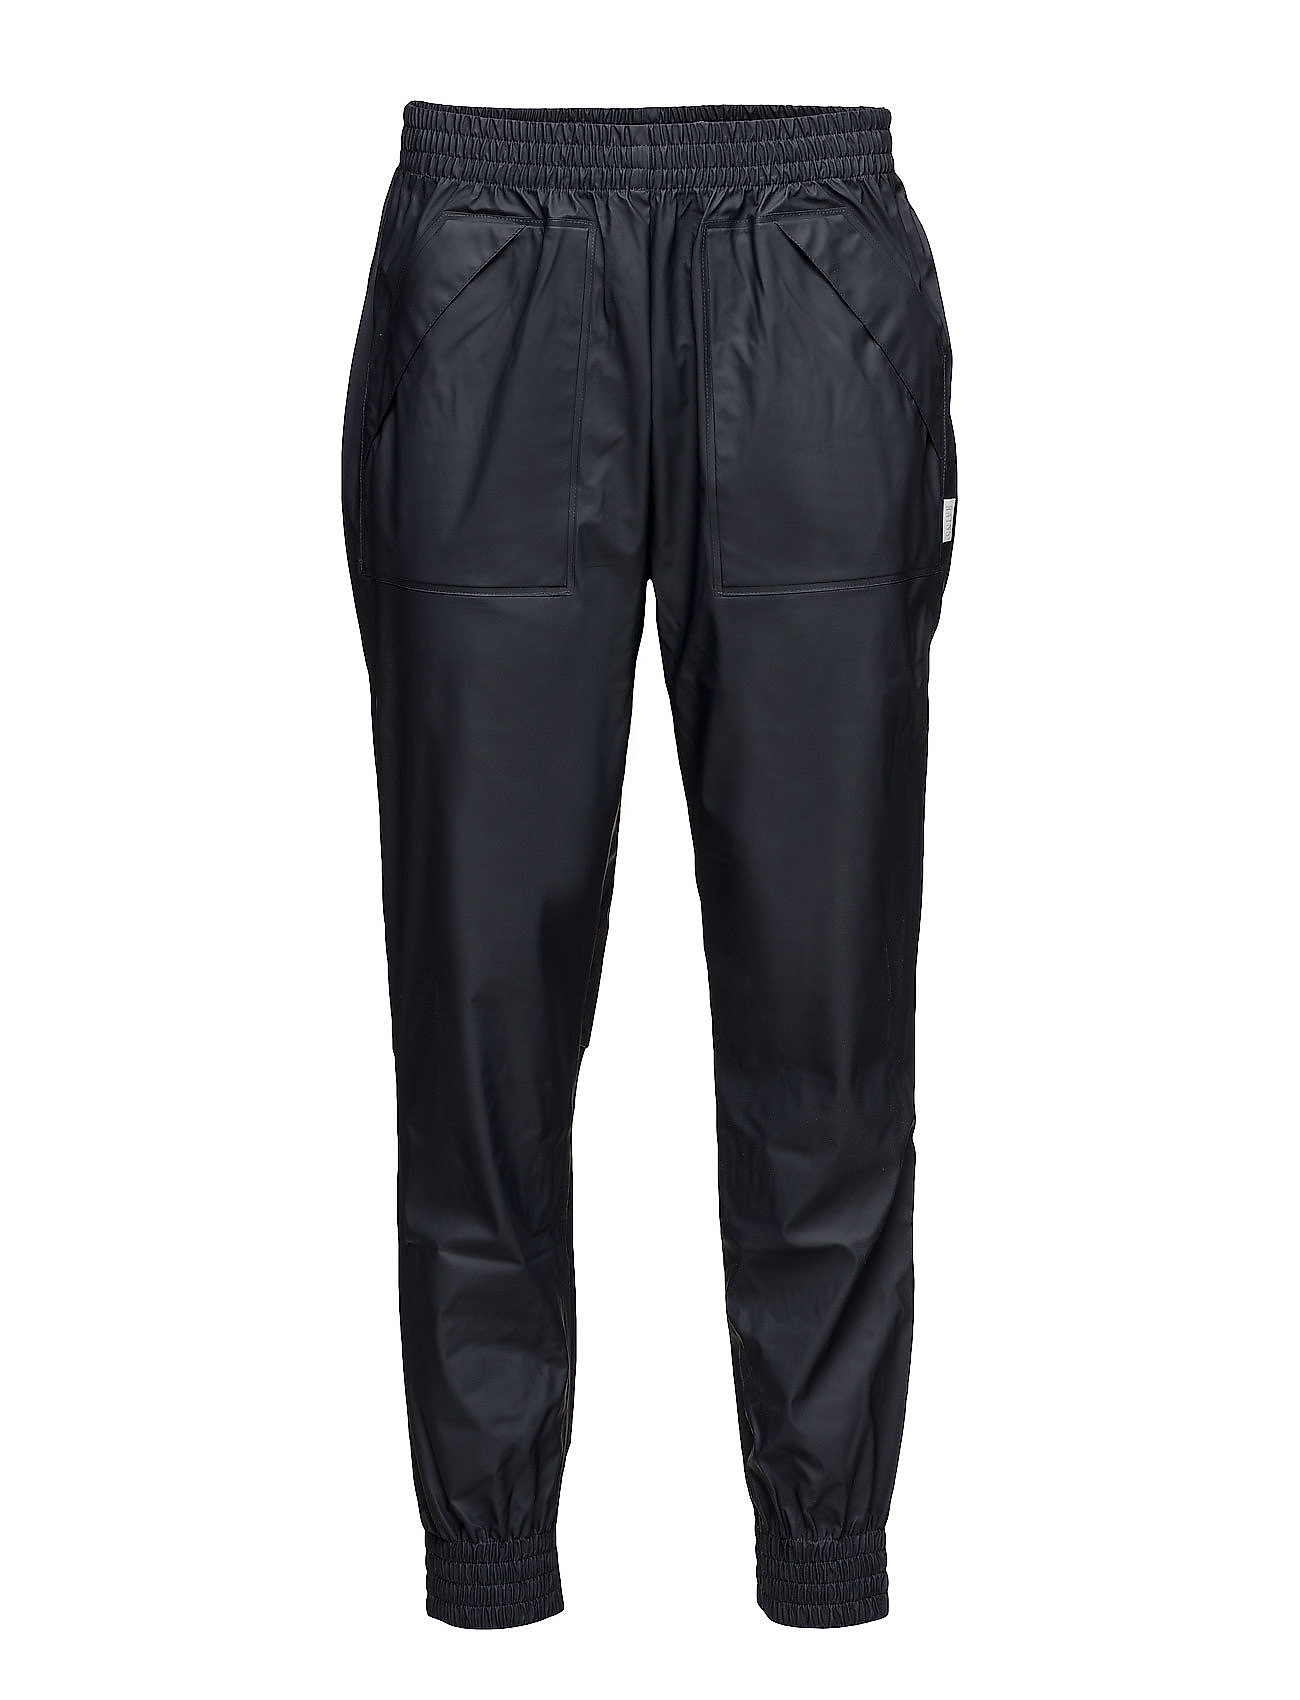 Trail Pants Rains Casual sko til Herrer i